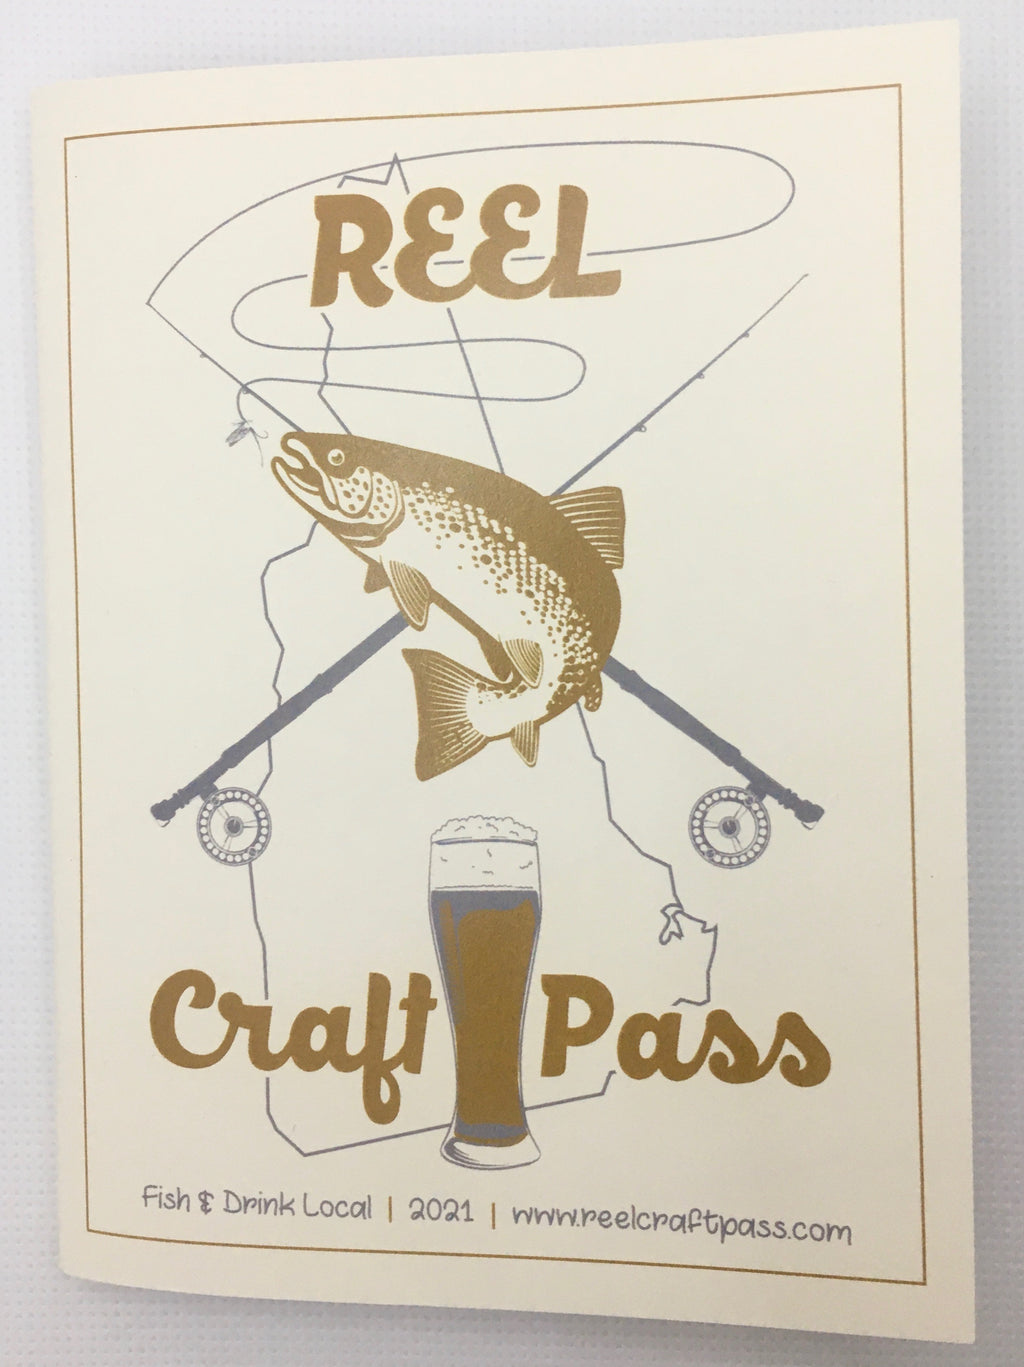 Wisconsin Reel Craft Pass (Expansion Pack)